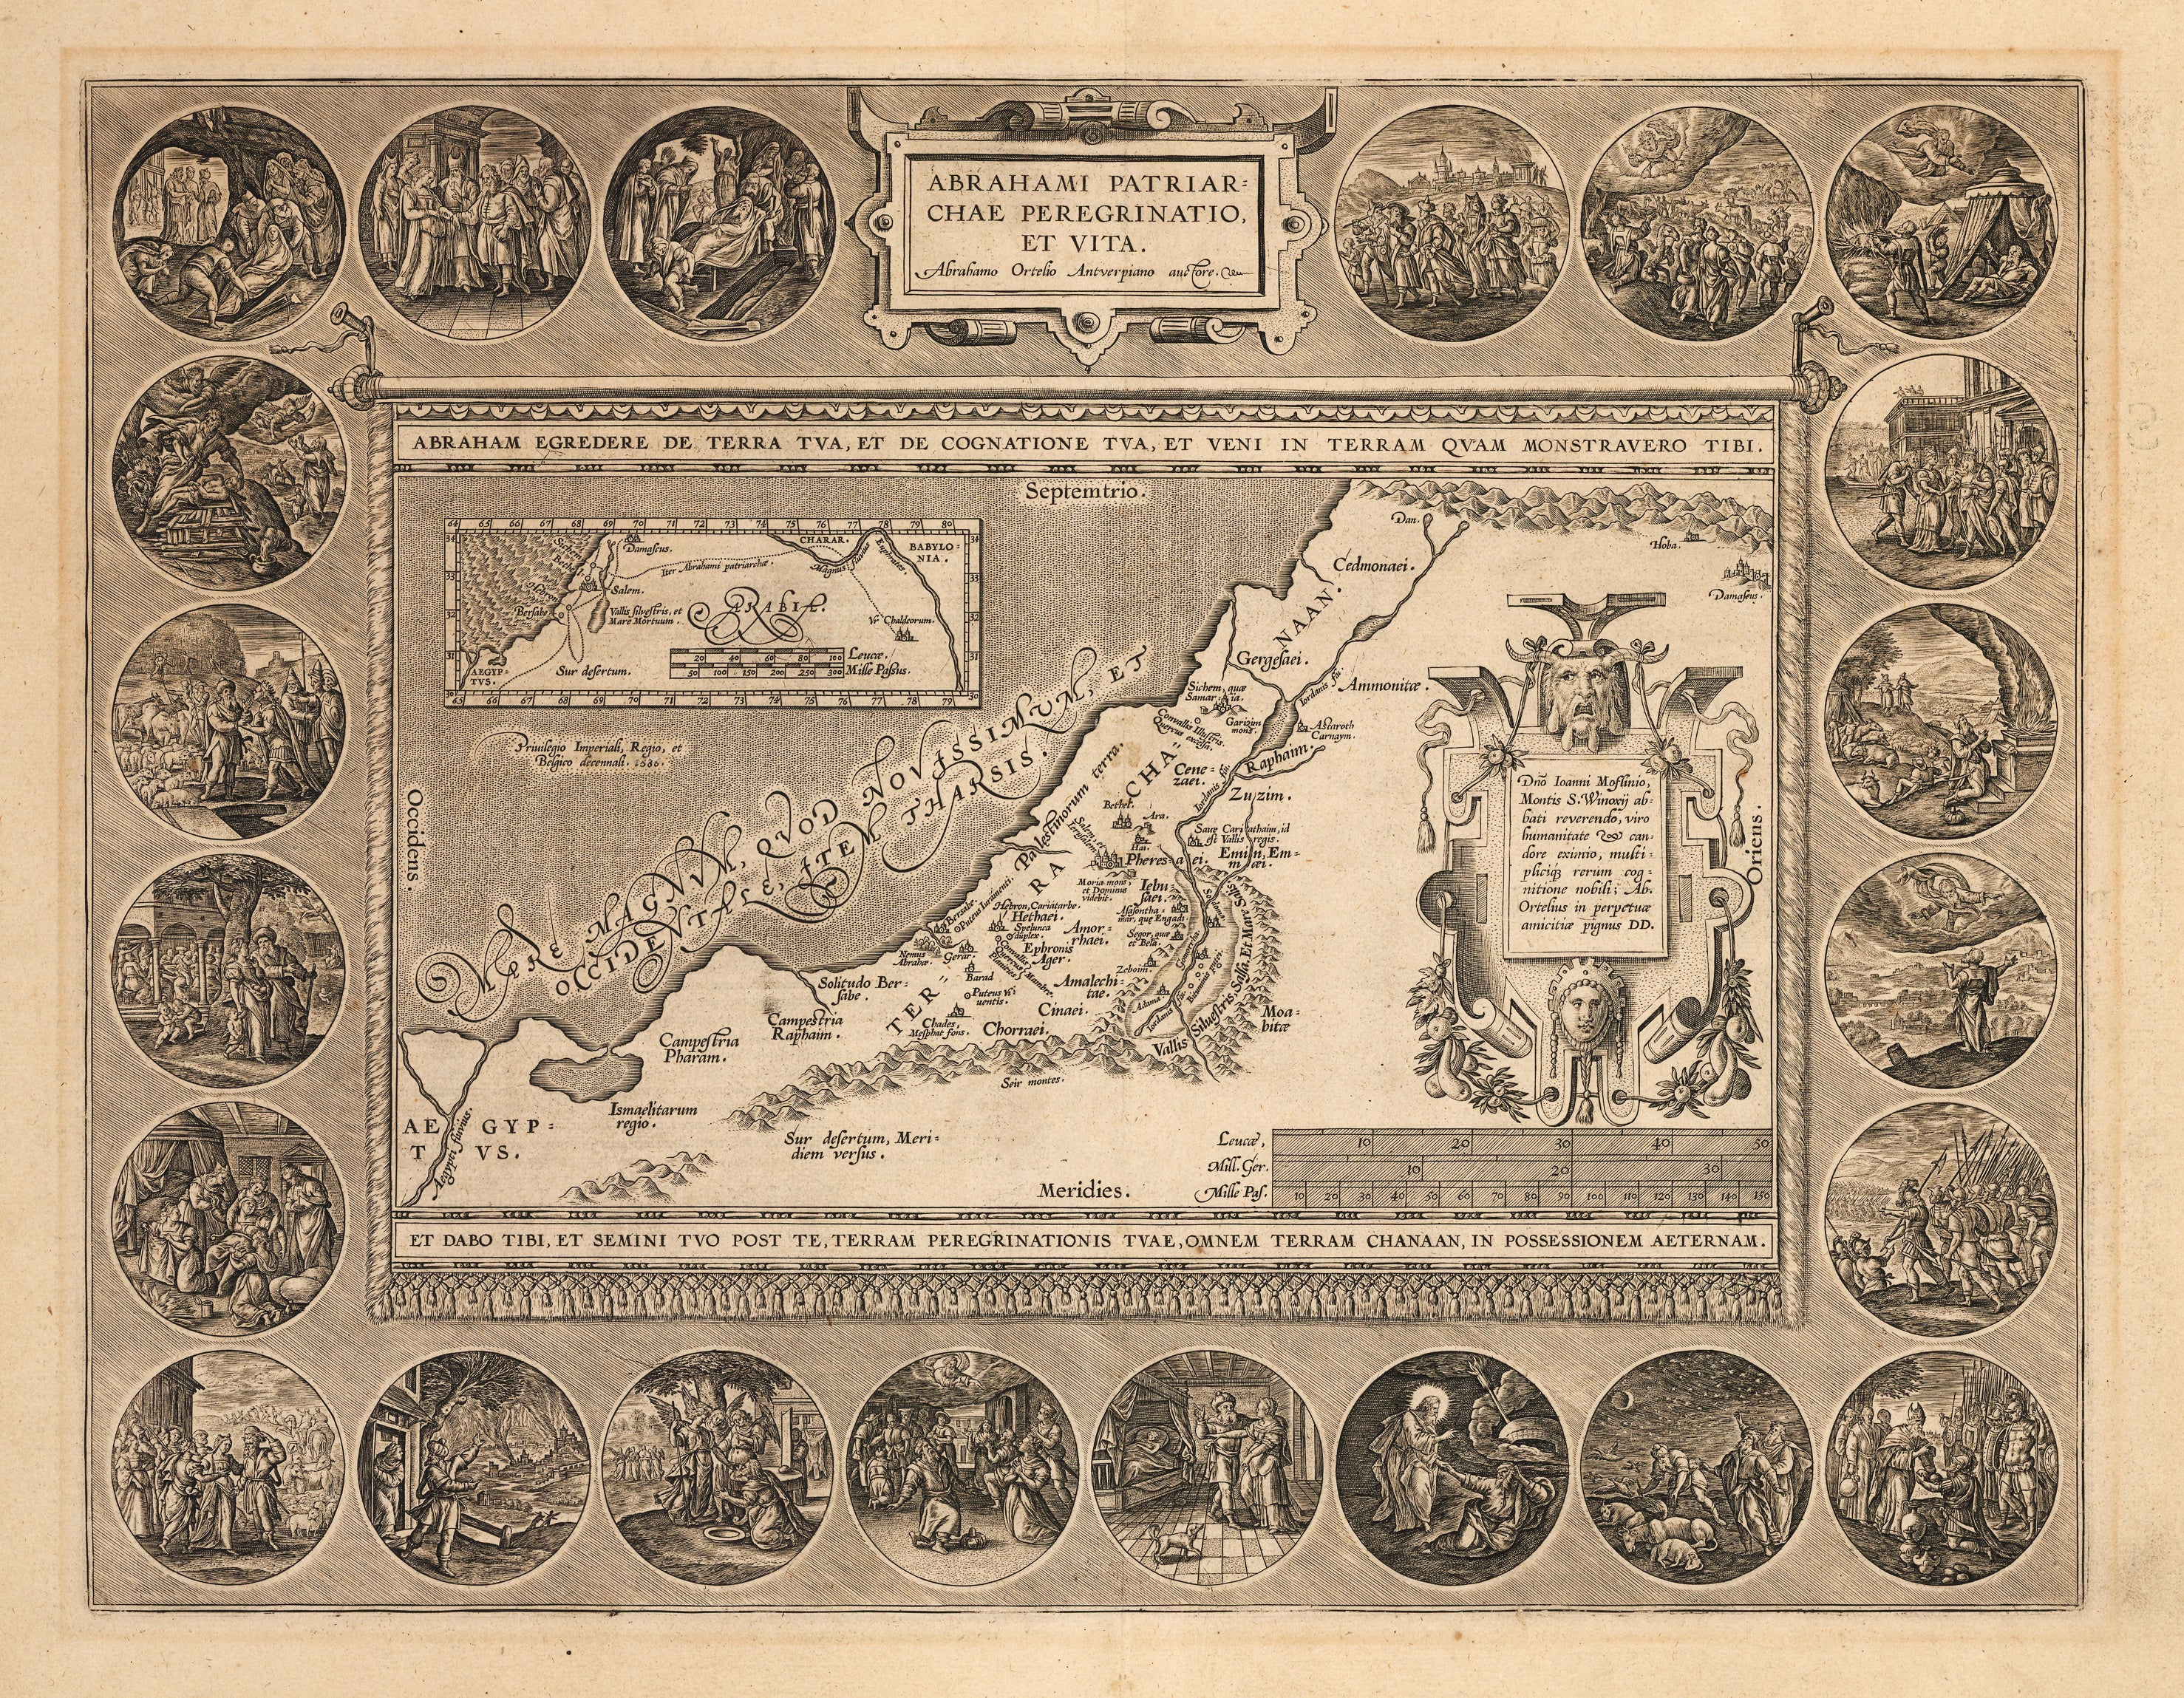 Abrahami Patriarchae Peregrinatio, et Vita. Antique Map of the Holy Land by: Ortelius 1590-92 - the Sotry of Abraham : nwcartographic.com